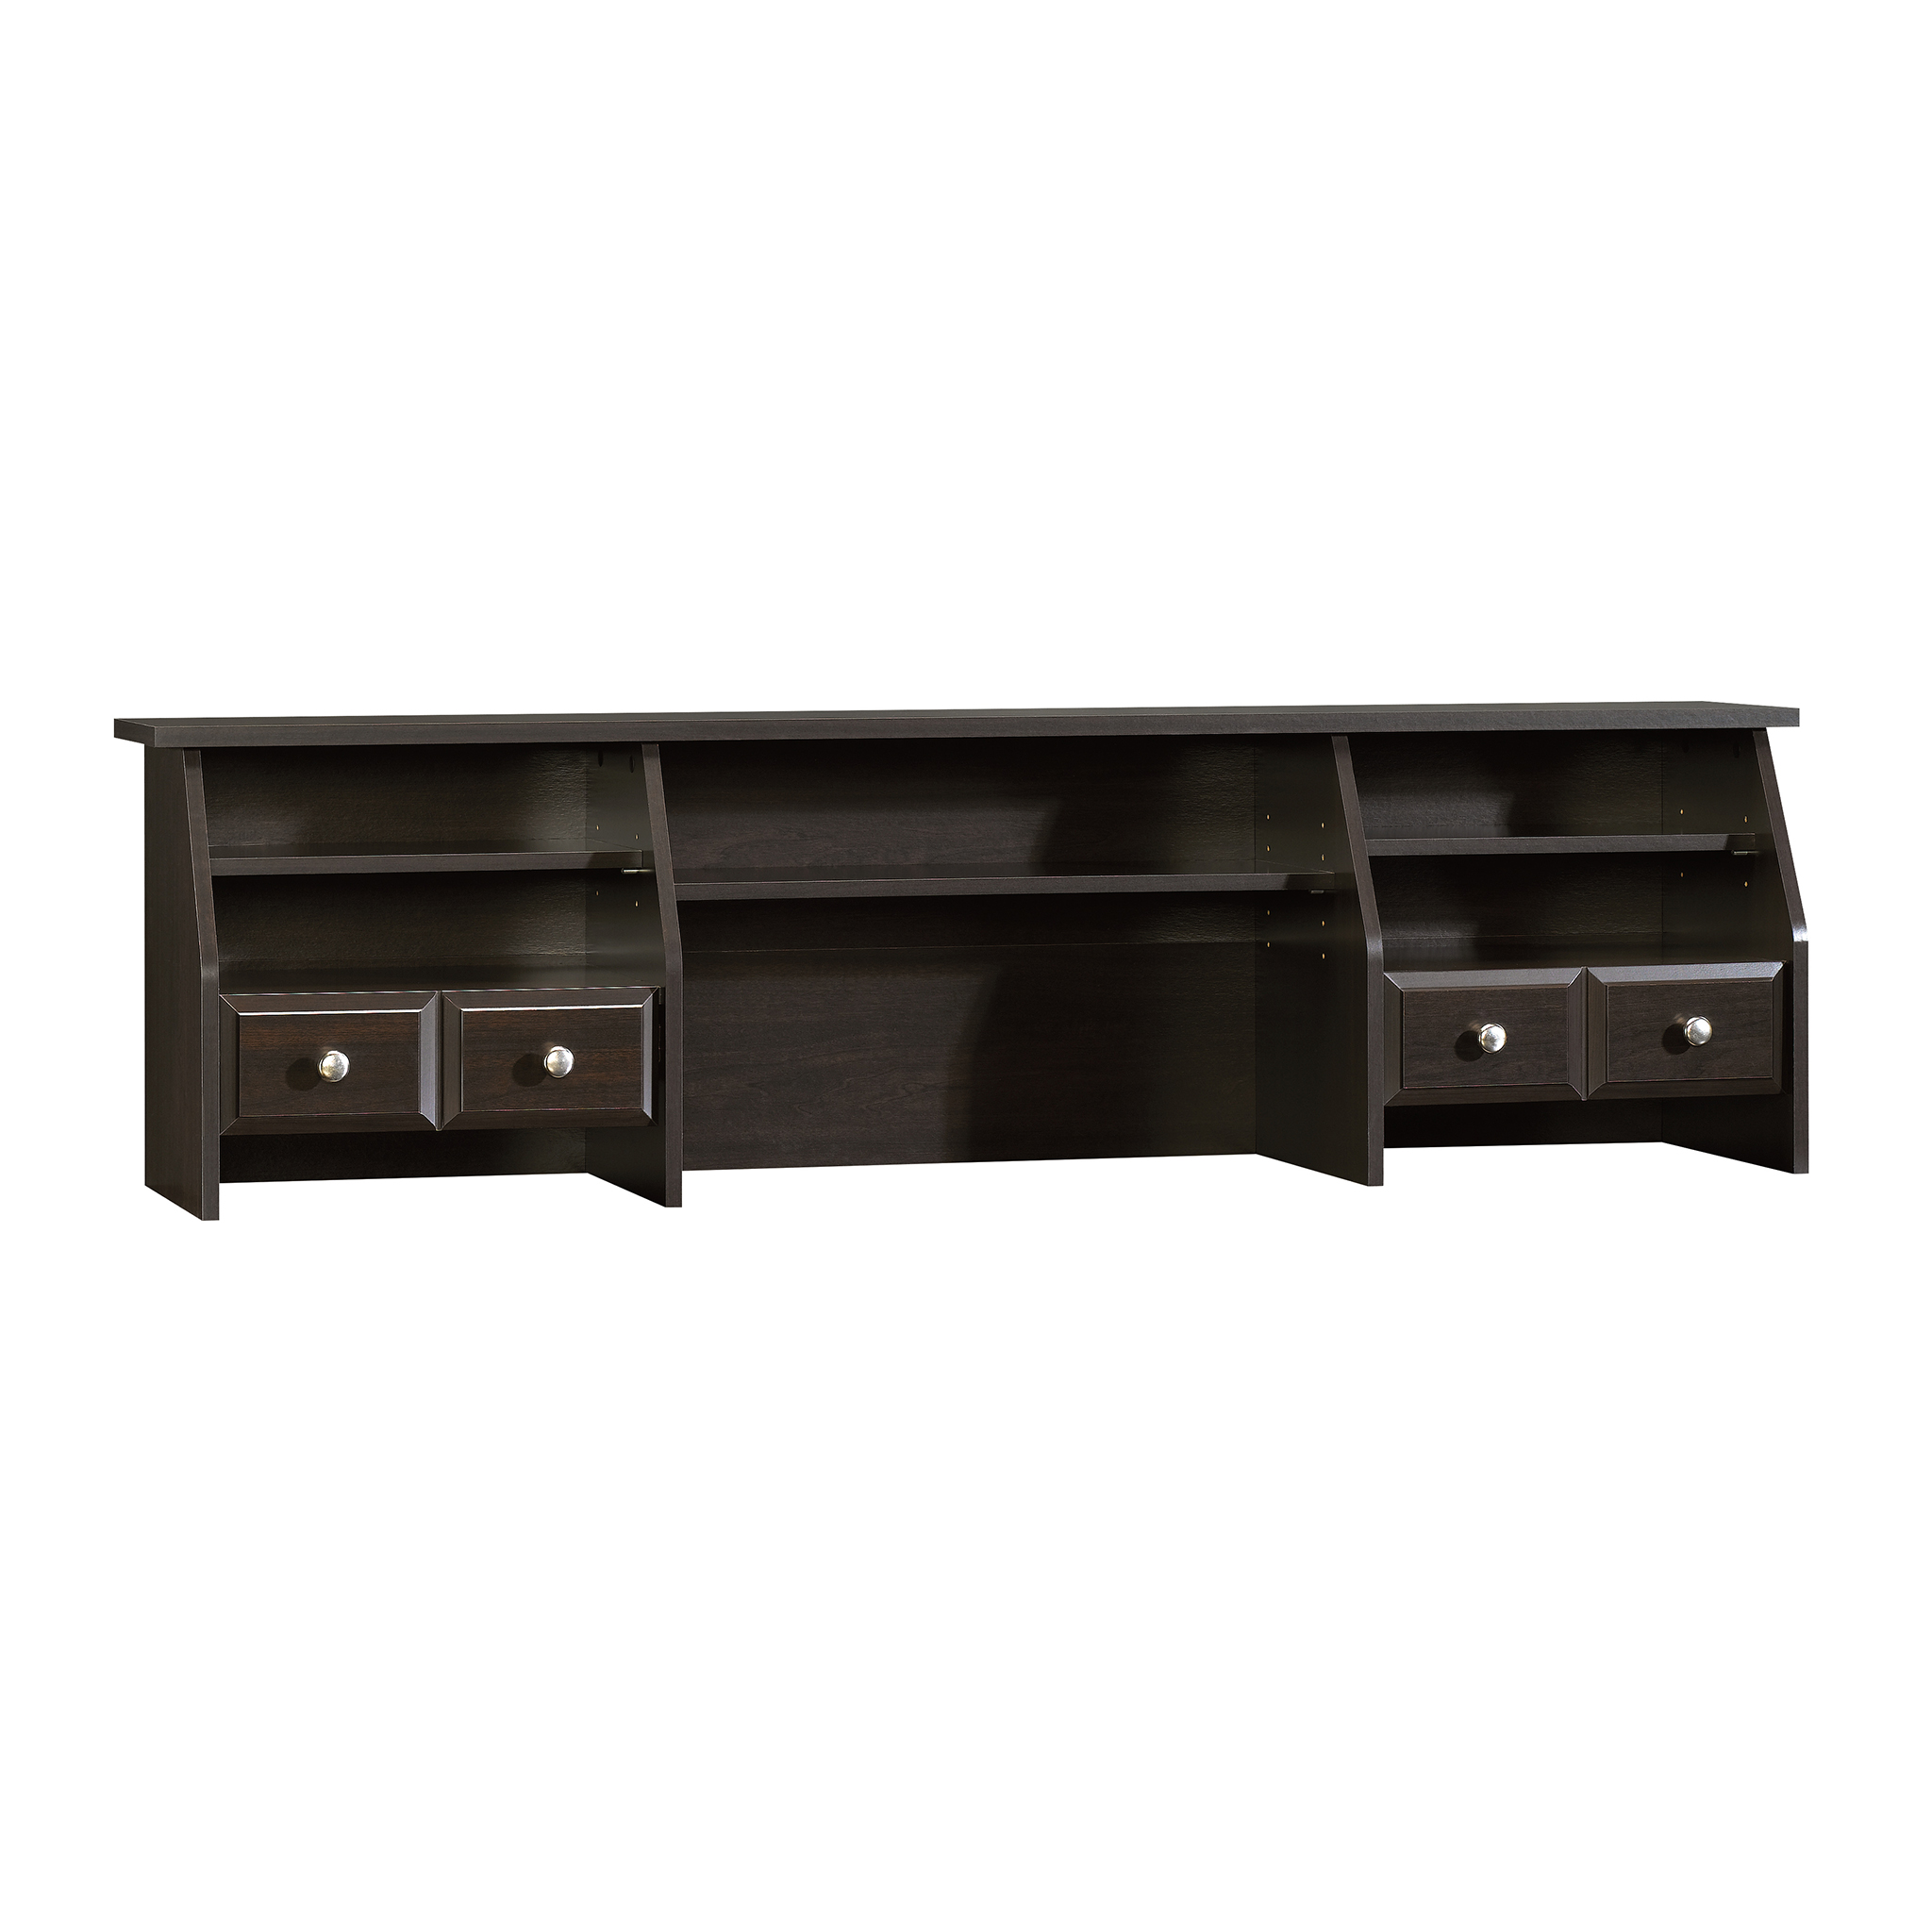 Sauder Shoal Creek Organizer Desk Hutch, Jamocha Wood Finish